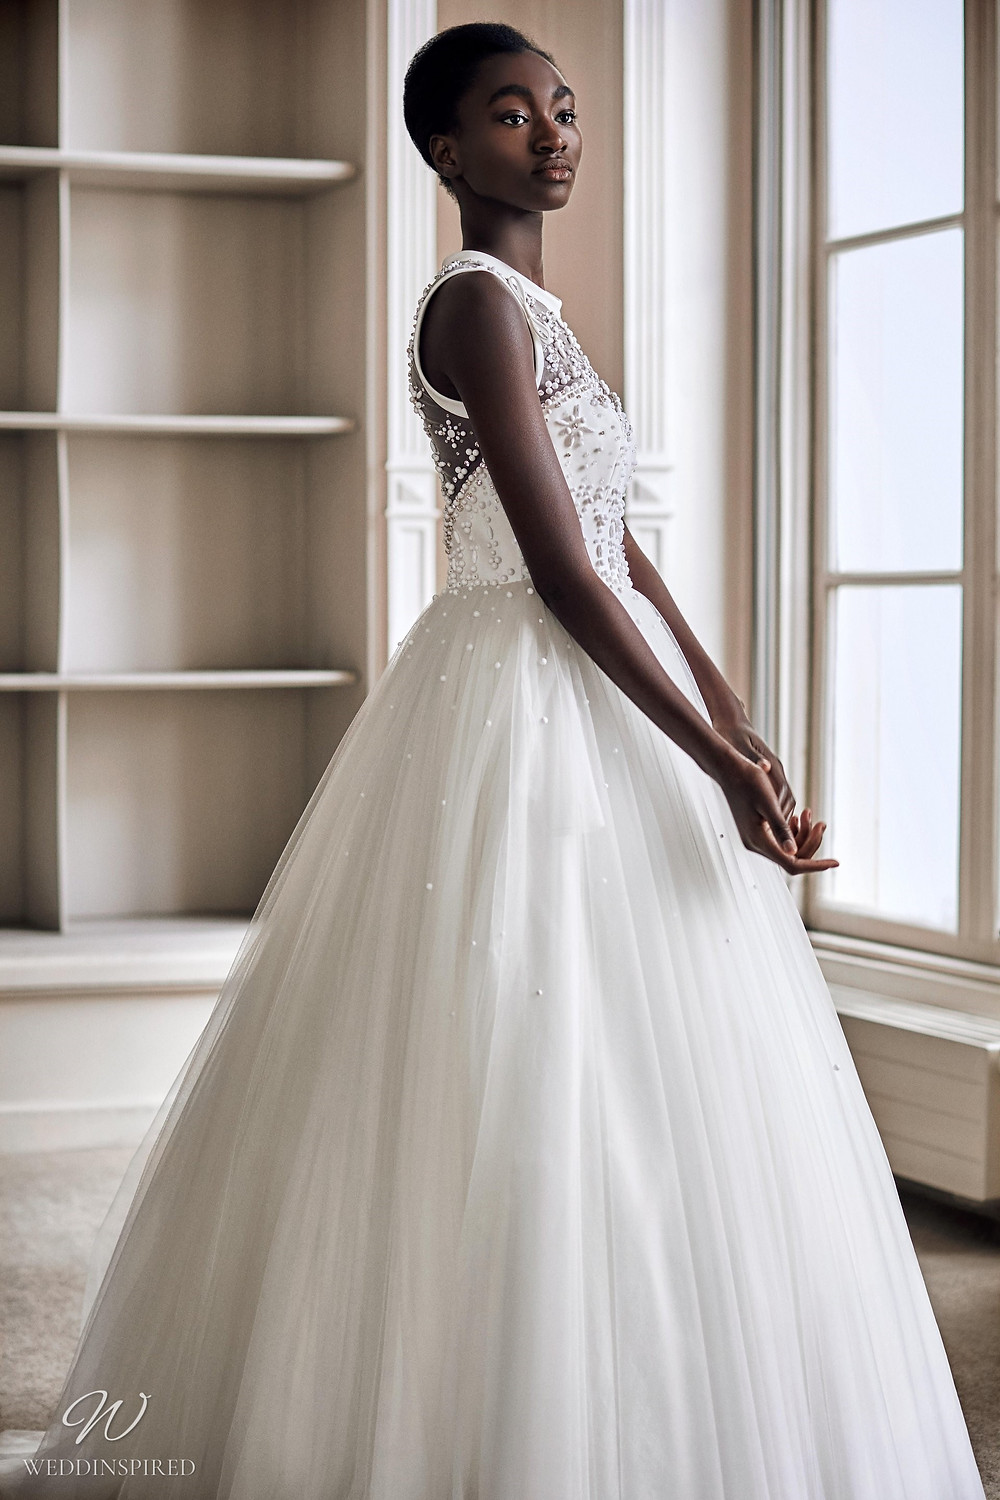 A Viktor & Rolf 2021 princess ball gown wedding dress with a tulle skirt and illusion neckline with beading